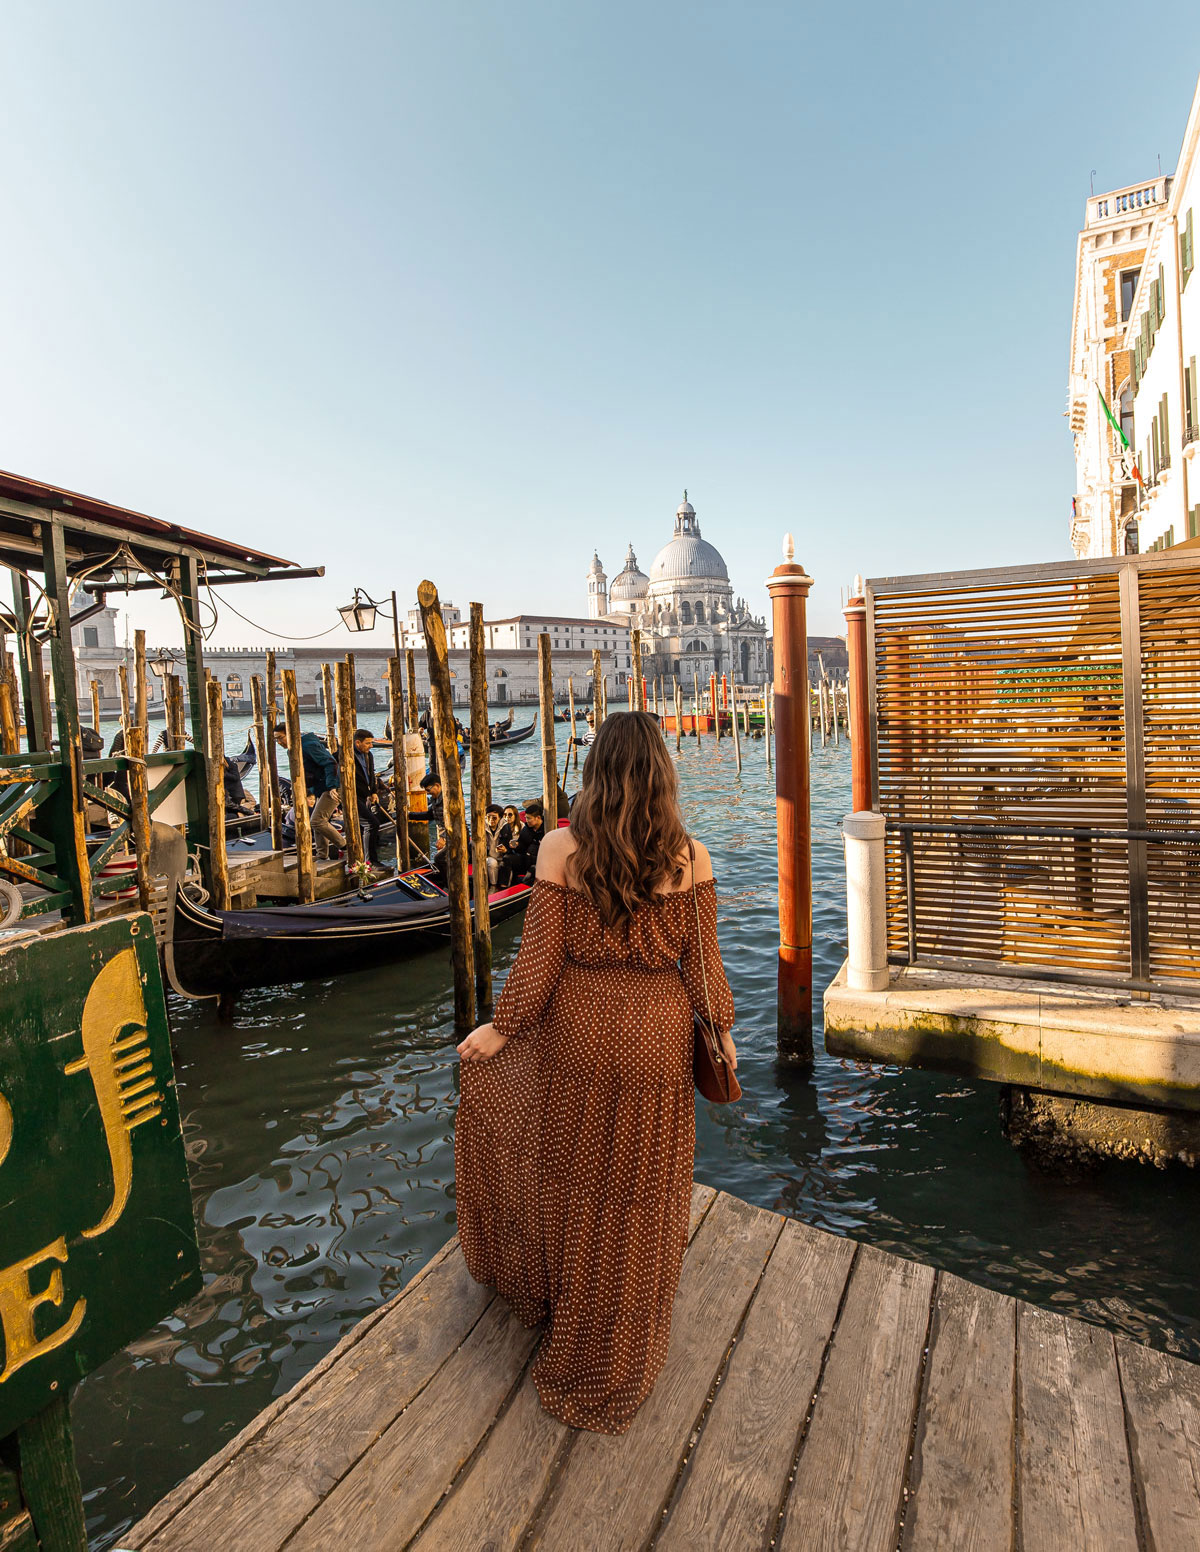 30-top-things-to-do-in-Venice---Venice-Instagram-spots-–-Venice-bucket-list---kelseyinlondon---kelsey-heinrichs---venice-gondola-ride---venice-grand-canal